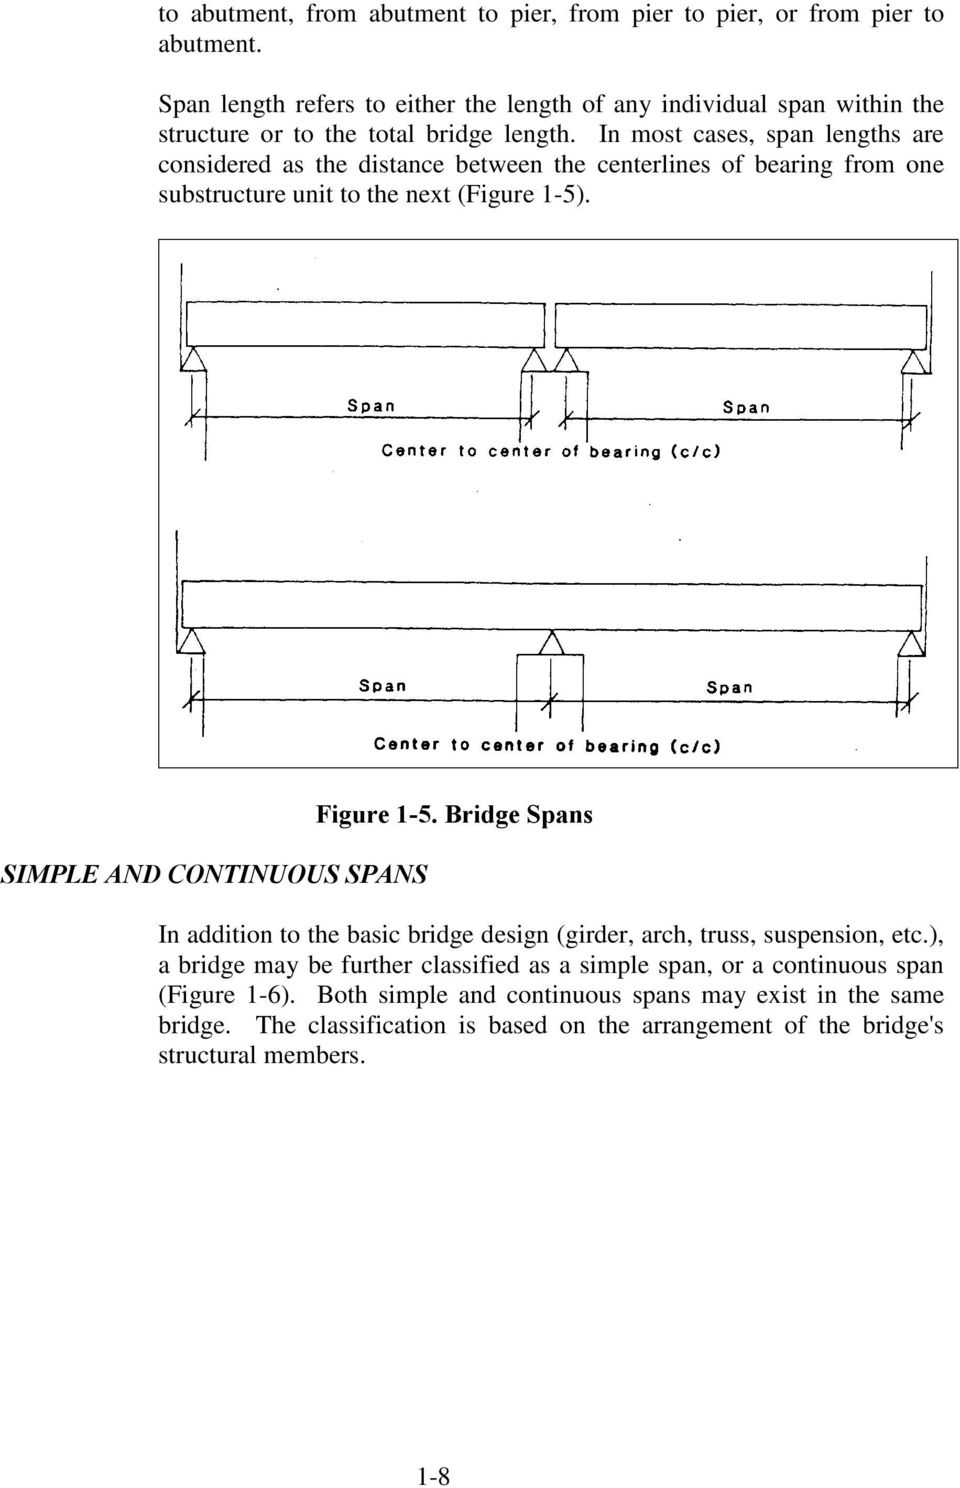 In most cases, span lengths are considered as the distance between the centerlines of bearing from one substructure unit to the next (Figure 1-5).